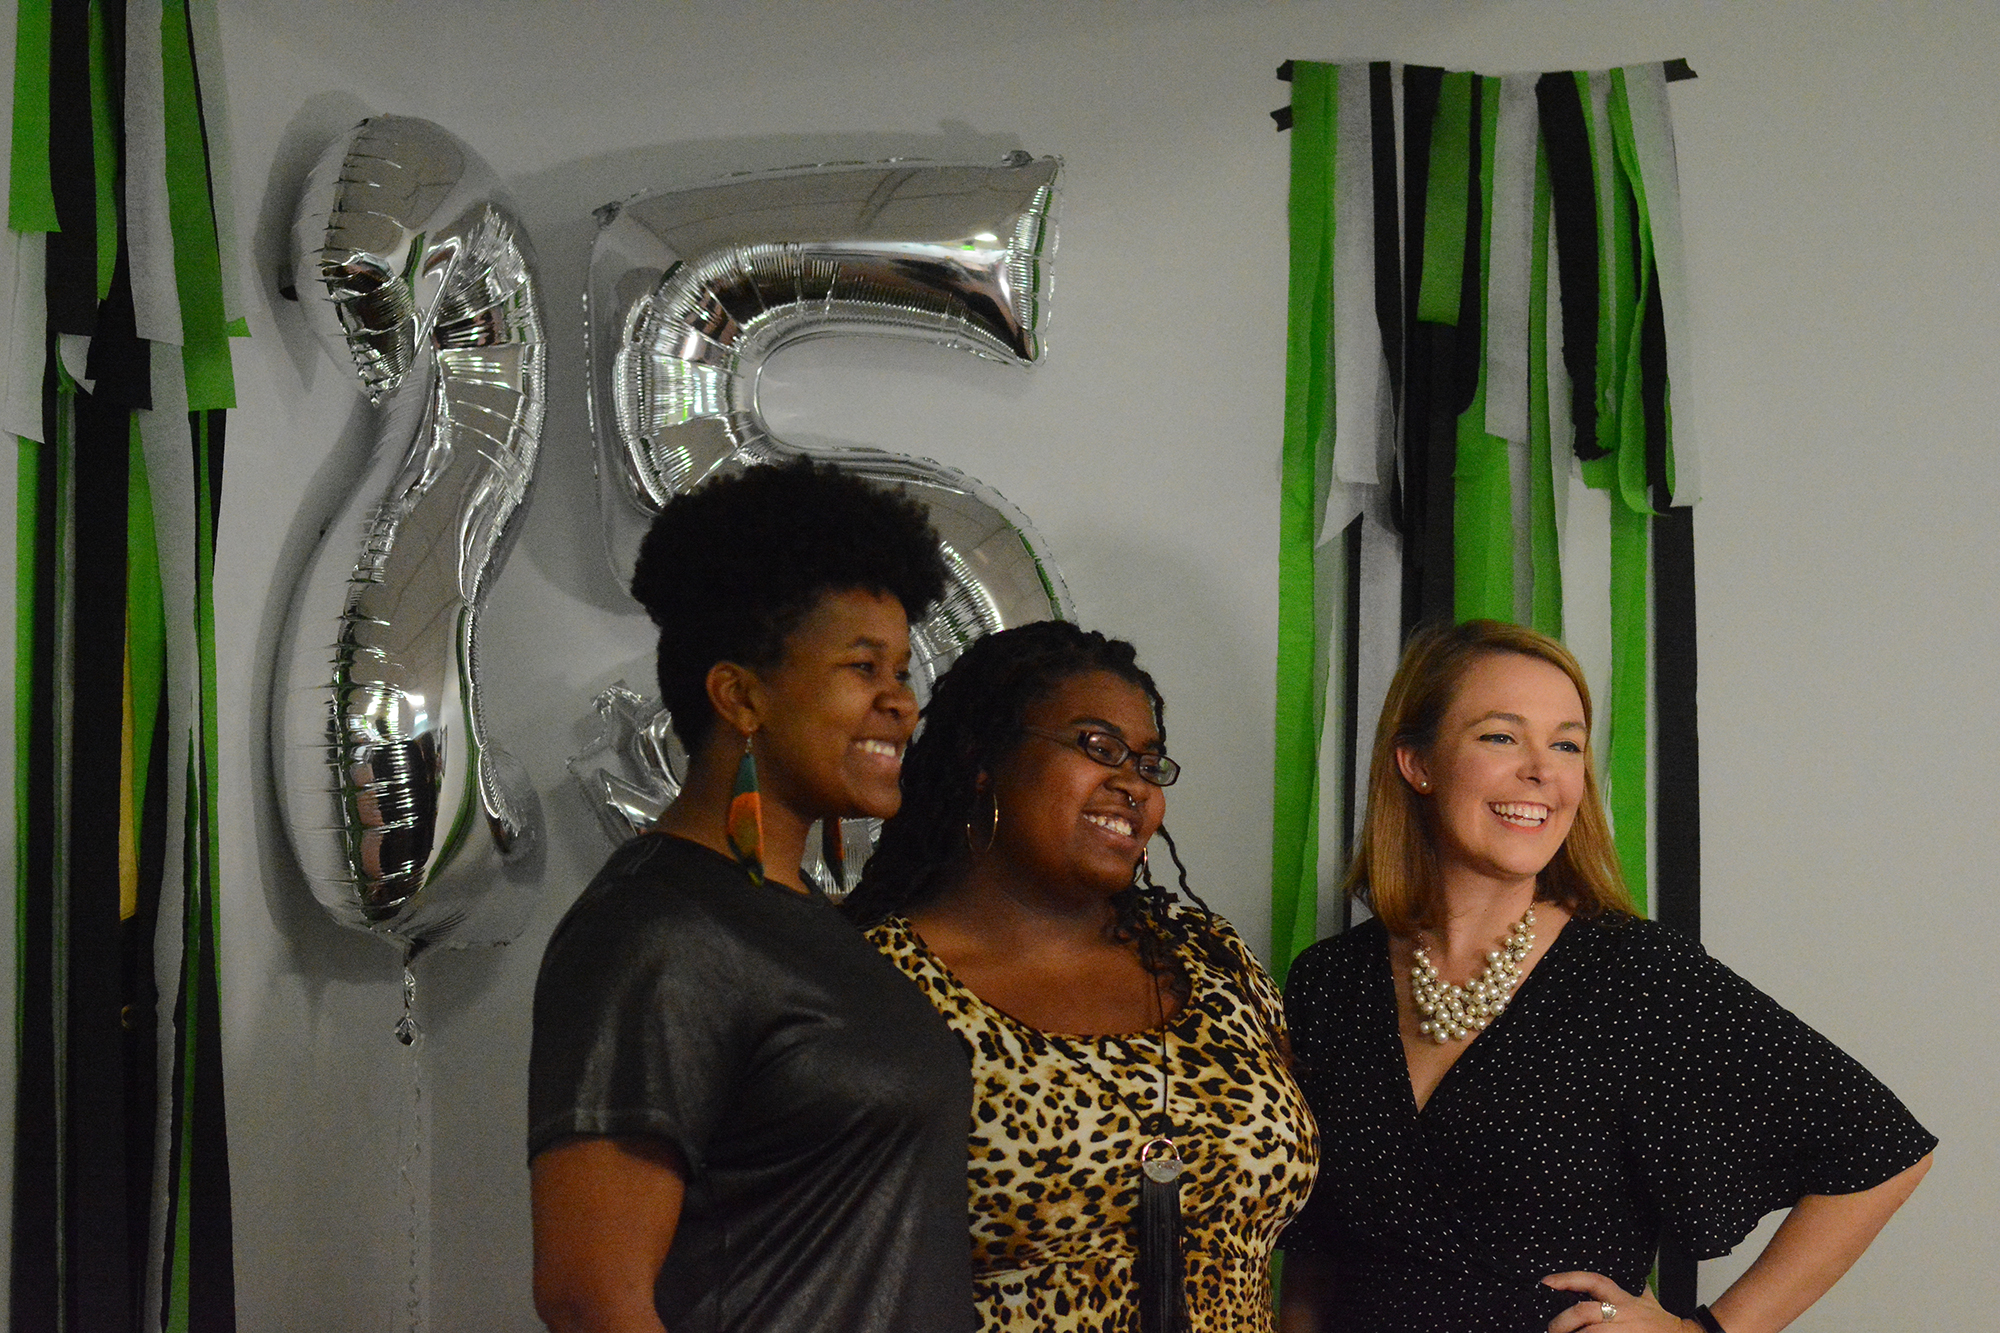 Three women pose in front of silver balloons and green streamers at photo booth